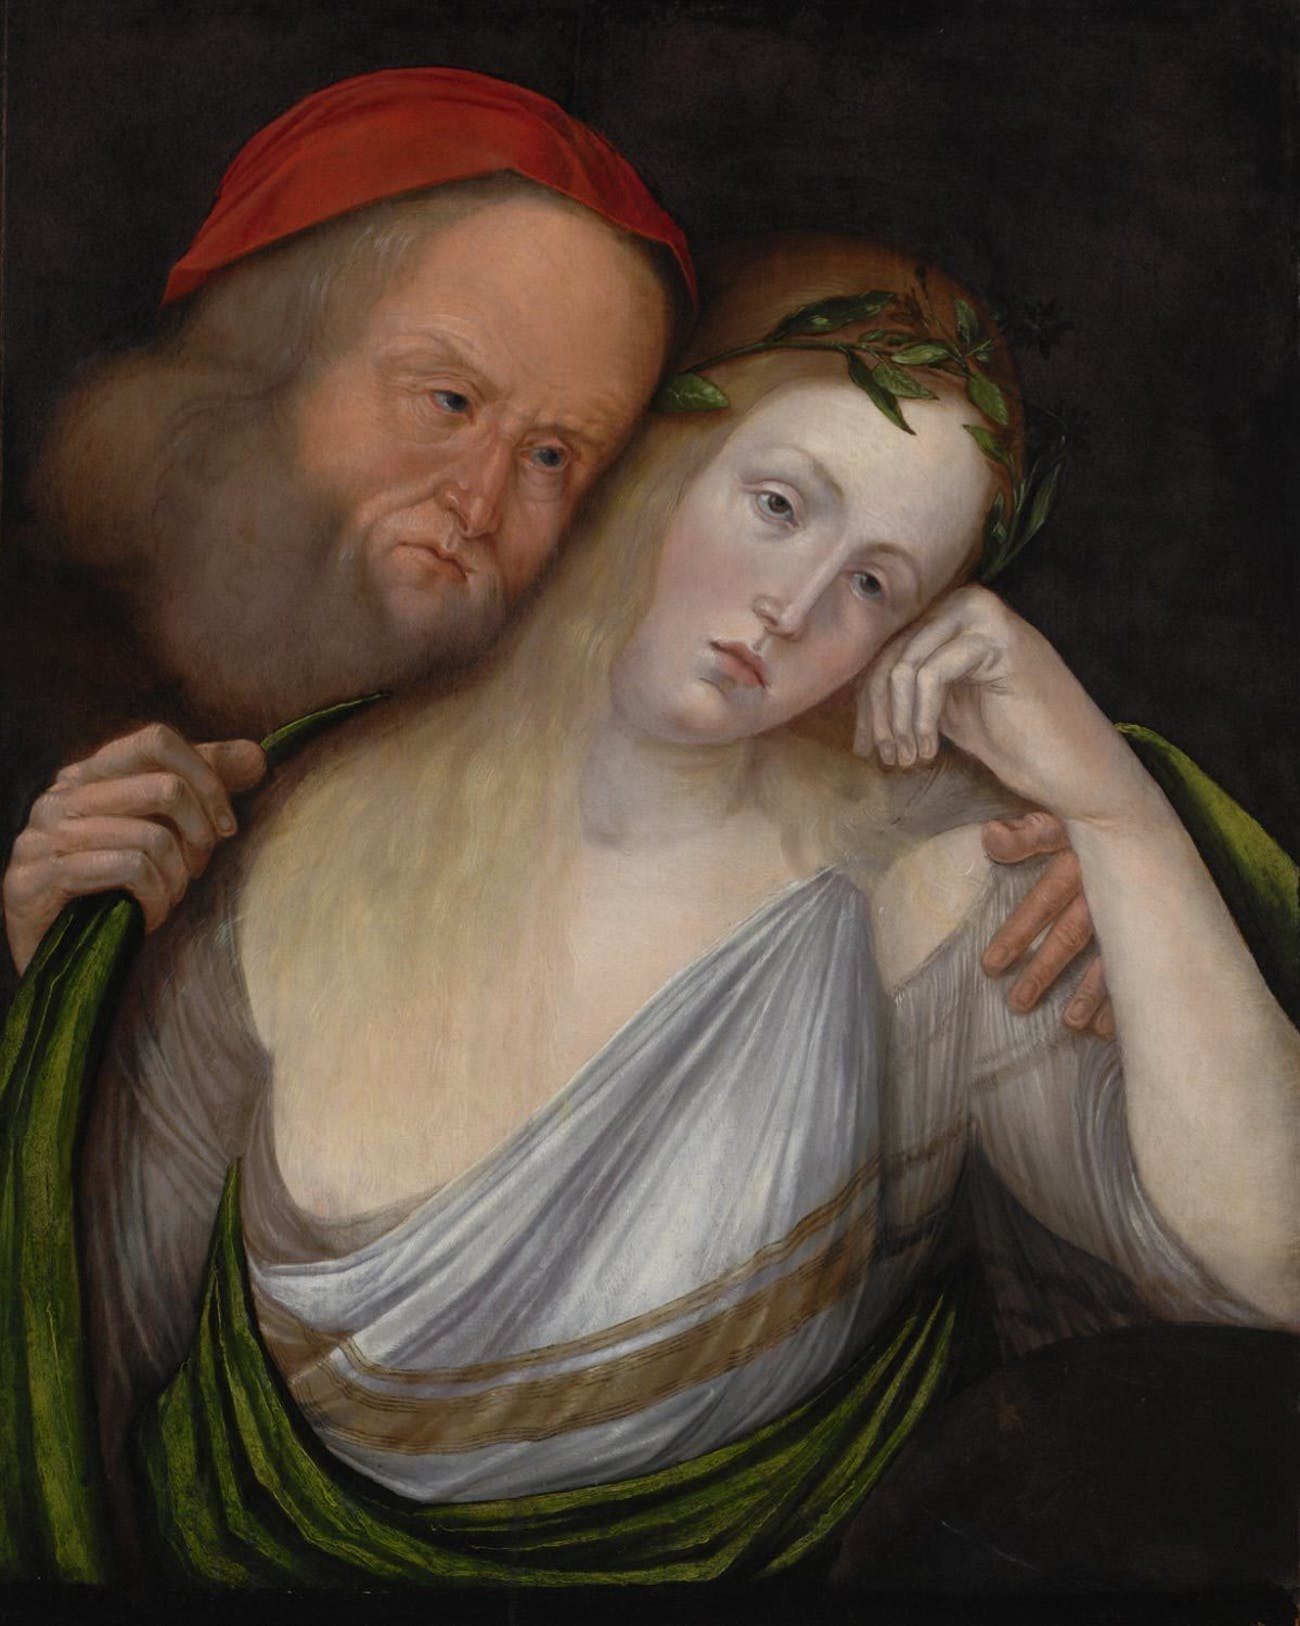 A 1503 painting of an old man and young woman.